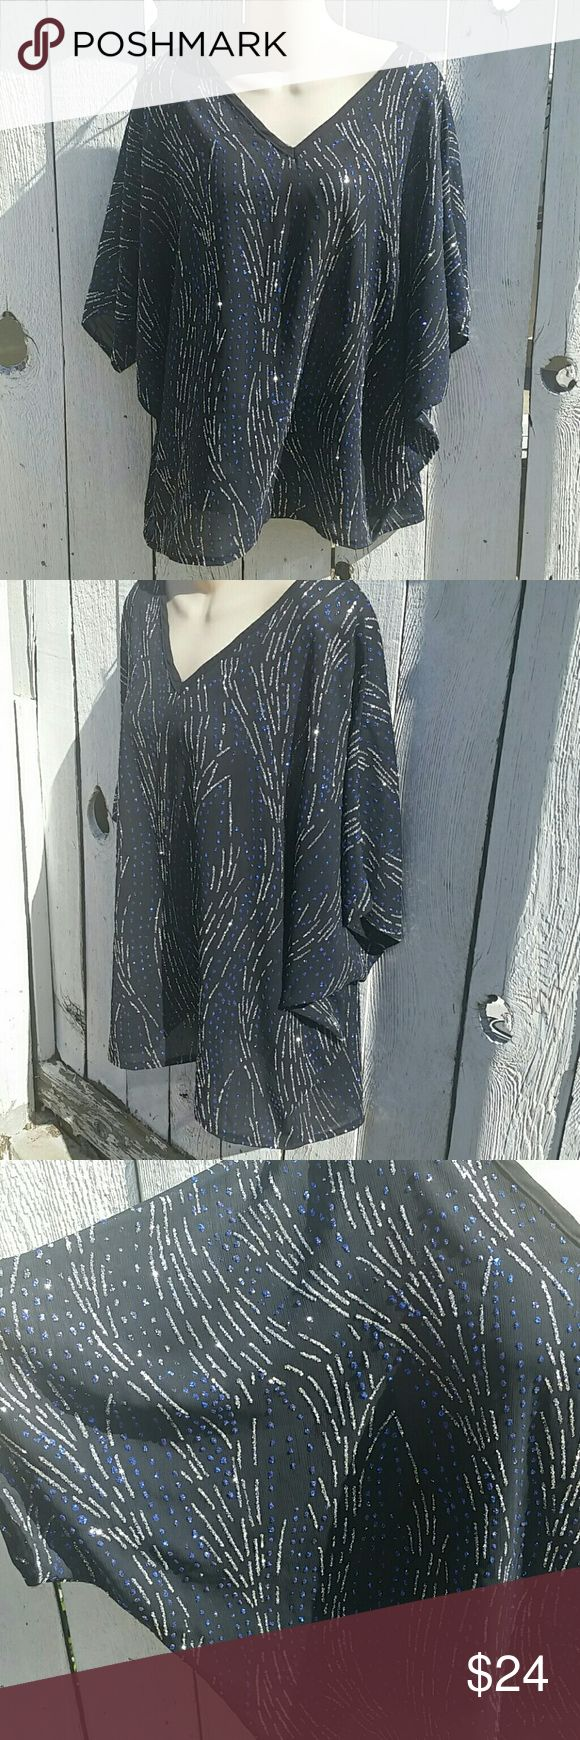 VINTAGE BALMAIN TOP Vintage silver/blue glitter on black chiffon flowy top with dolman sleeve. Beautiful Balmain style top. Fits size small to x-large best.  Perfect for up coming music festivals. VINTAGE  Tops